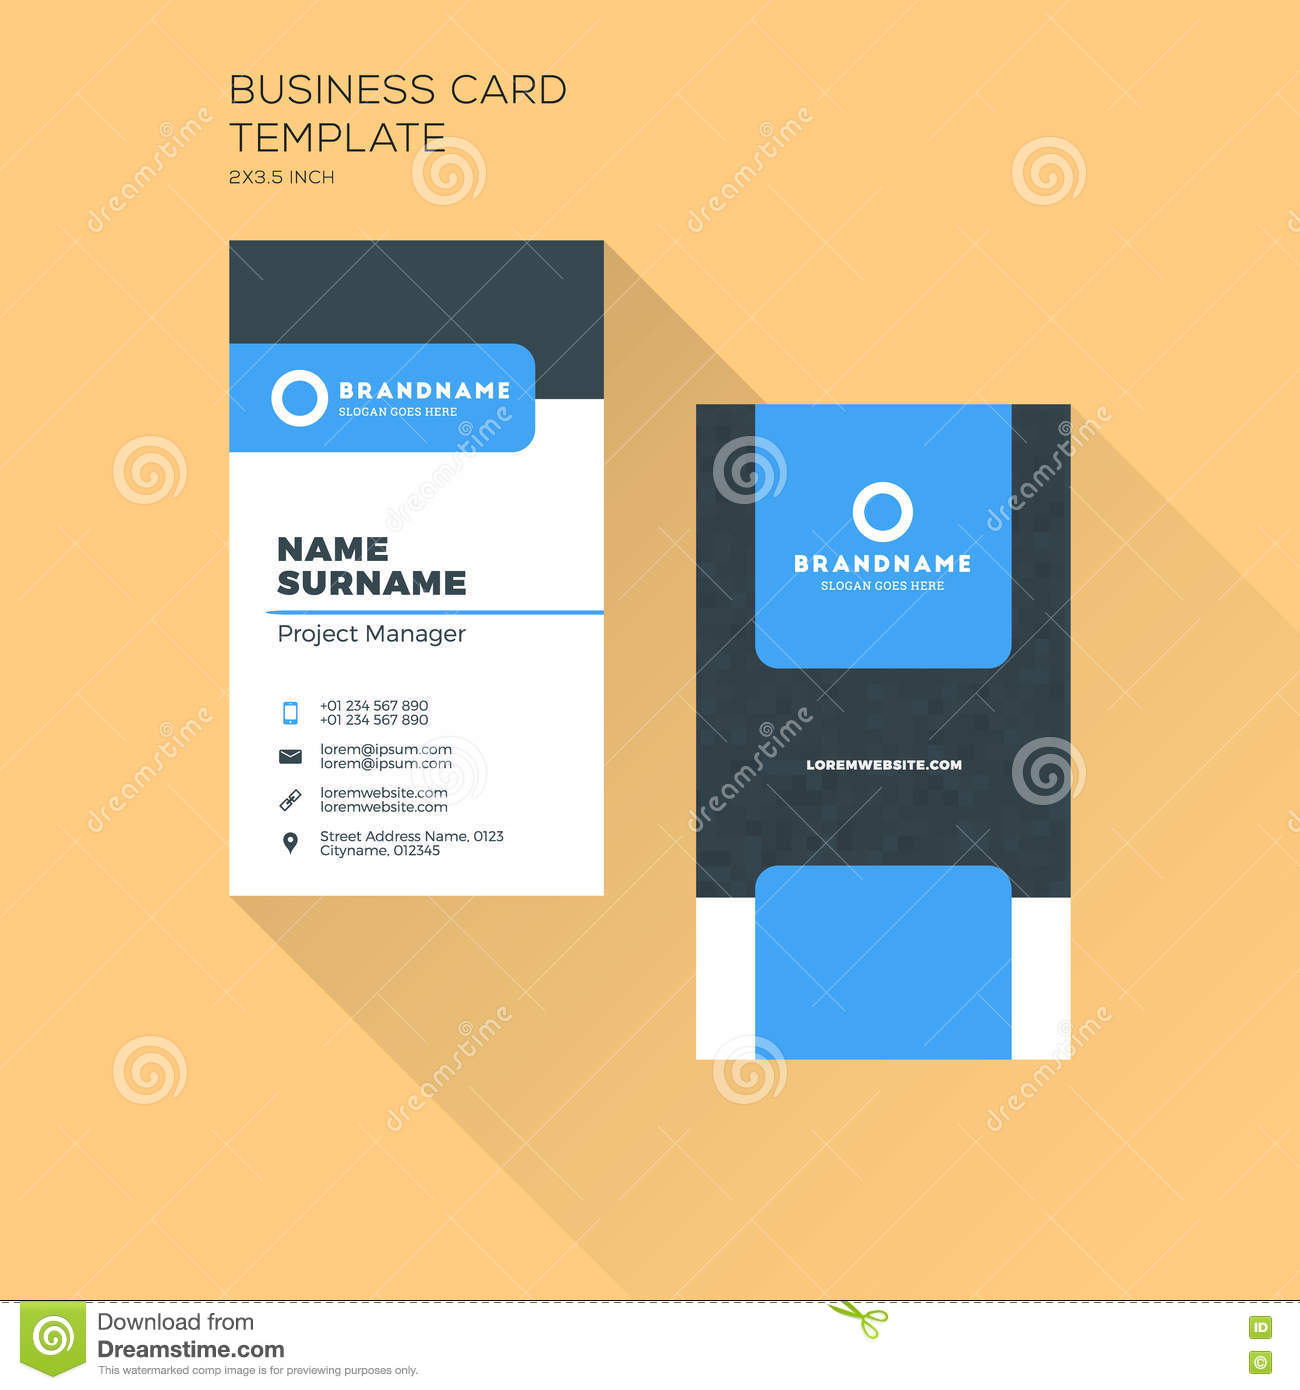 Vertical business card print template personal business card wi download vertical business card print template personal business card wi stock vector illustration of accmission Images